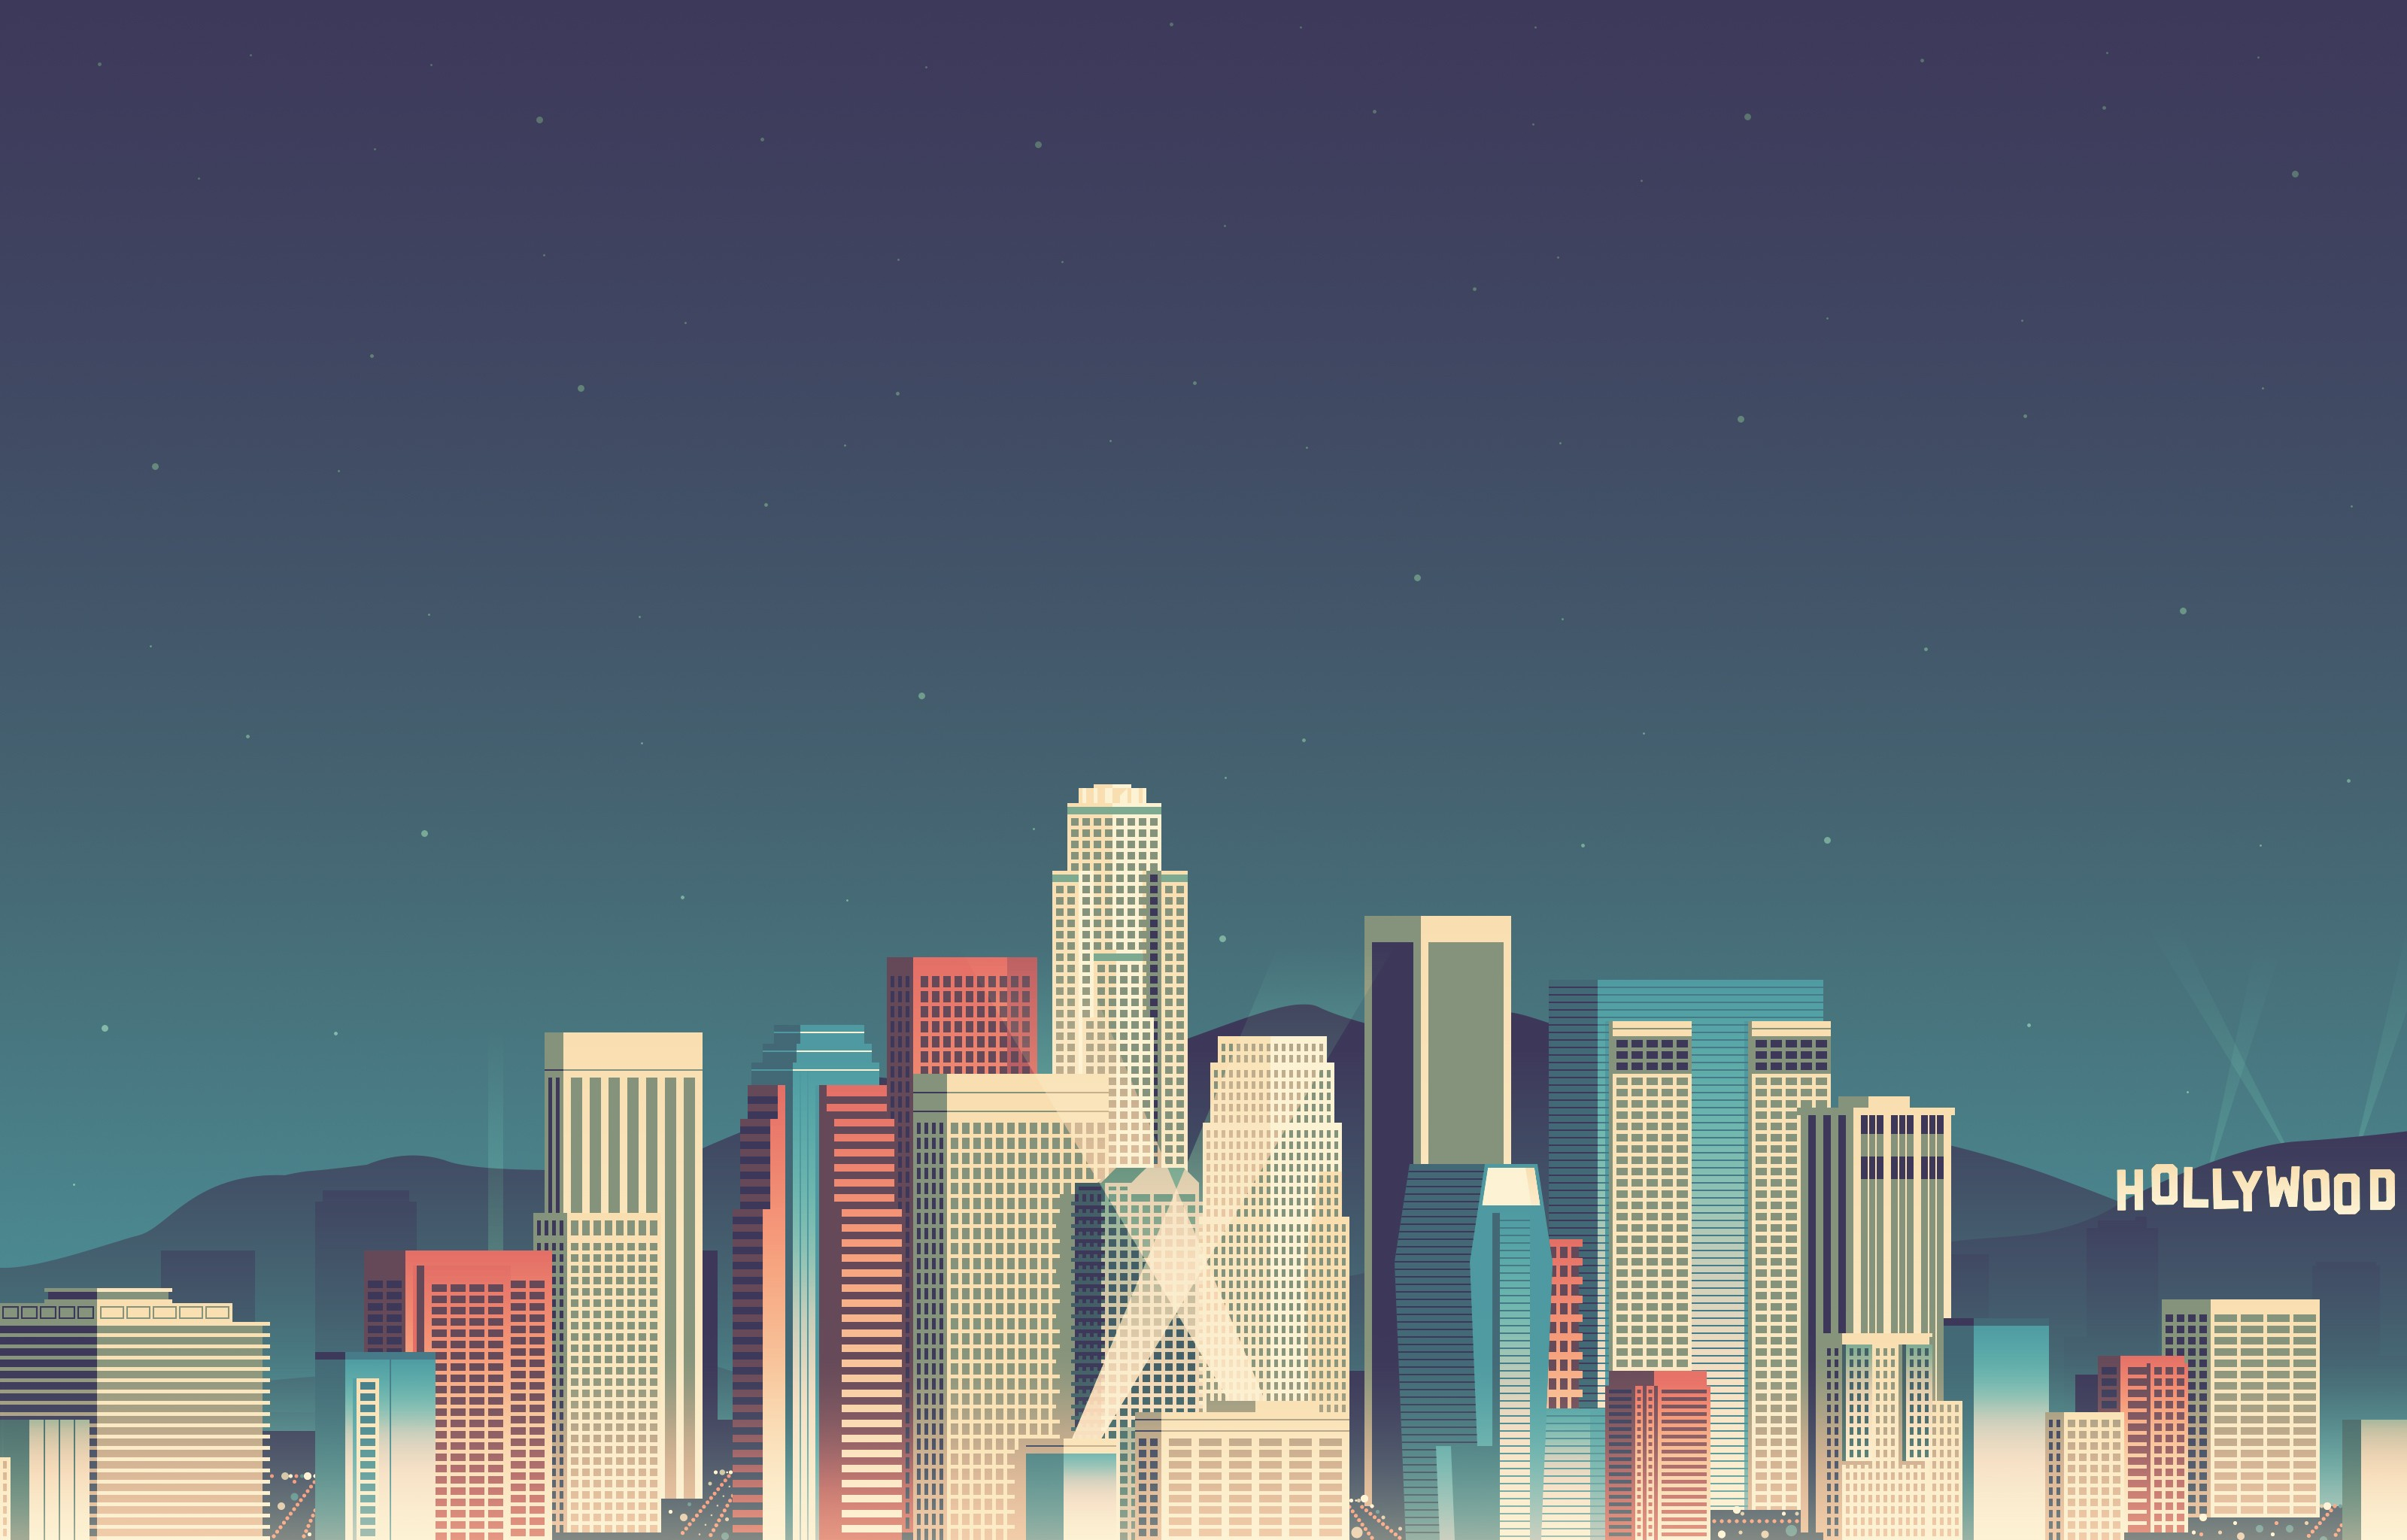 8 Bit Wallpaper Android